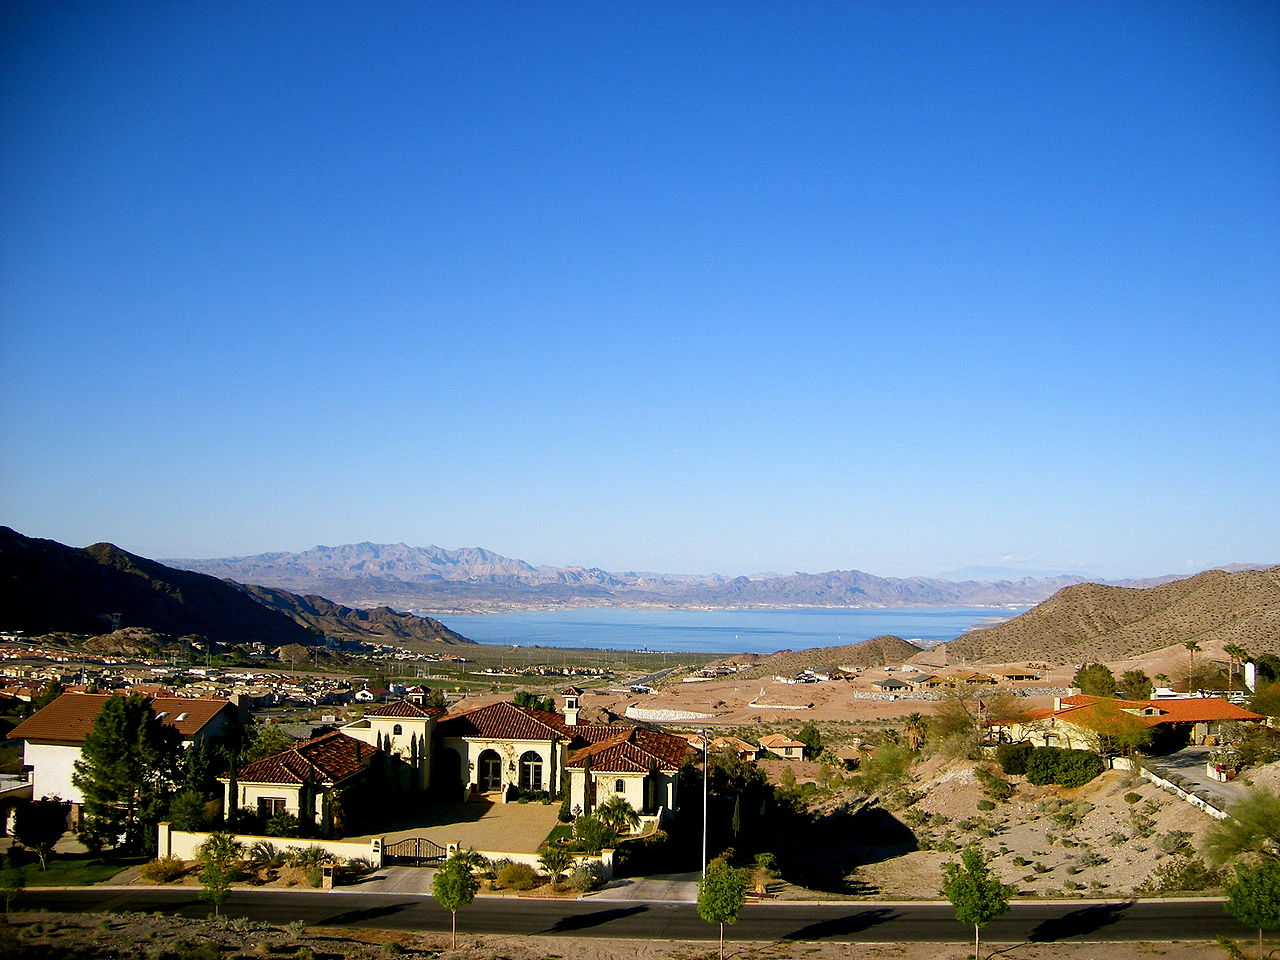 1280px-Boulder_City,_View_of_Lake_Mead